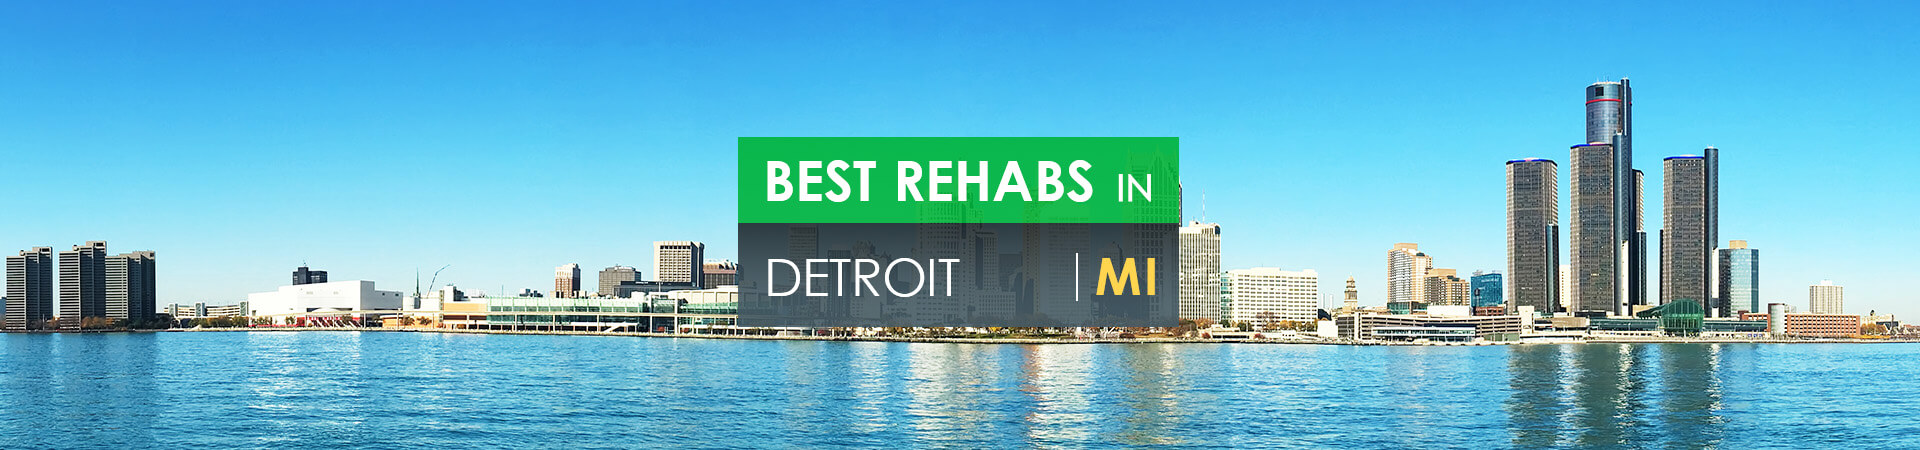 Best rehabs in Detroit, MI